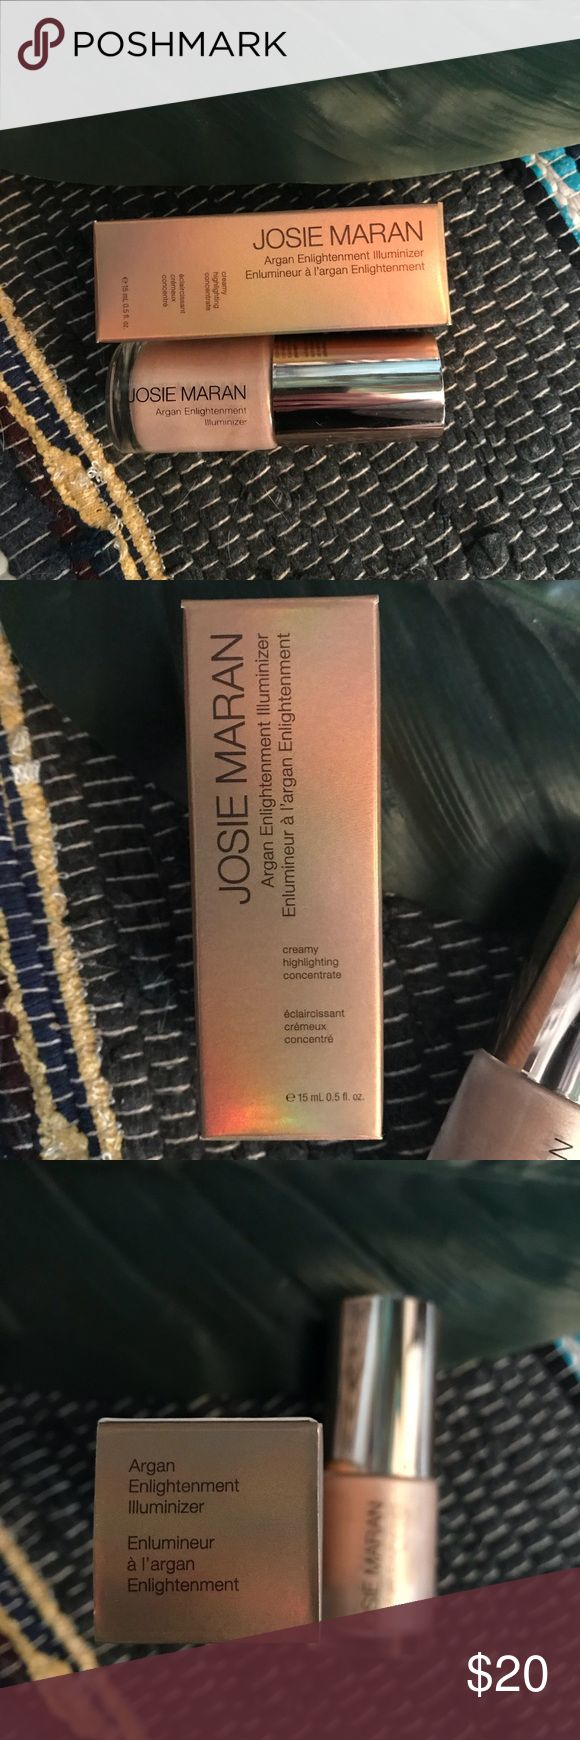 """josie marian argan illuminizer🌸 a versatile golden highlighting liquid  can be used on the face,  mixed with foundation,  moisturizer,  or oil for a magical lit-from-within glow!    """"A concentrated radiance liquid for the face, with high-performance crystals that are infused with multicolored luster pigments to capture and reflect light.""""  ! Sephora Makeup Luminizer"""